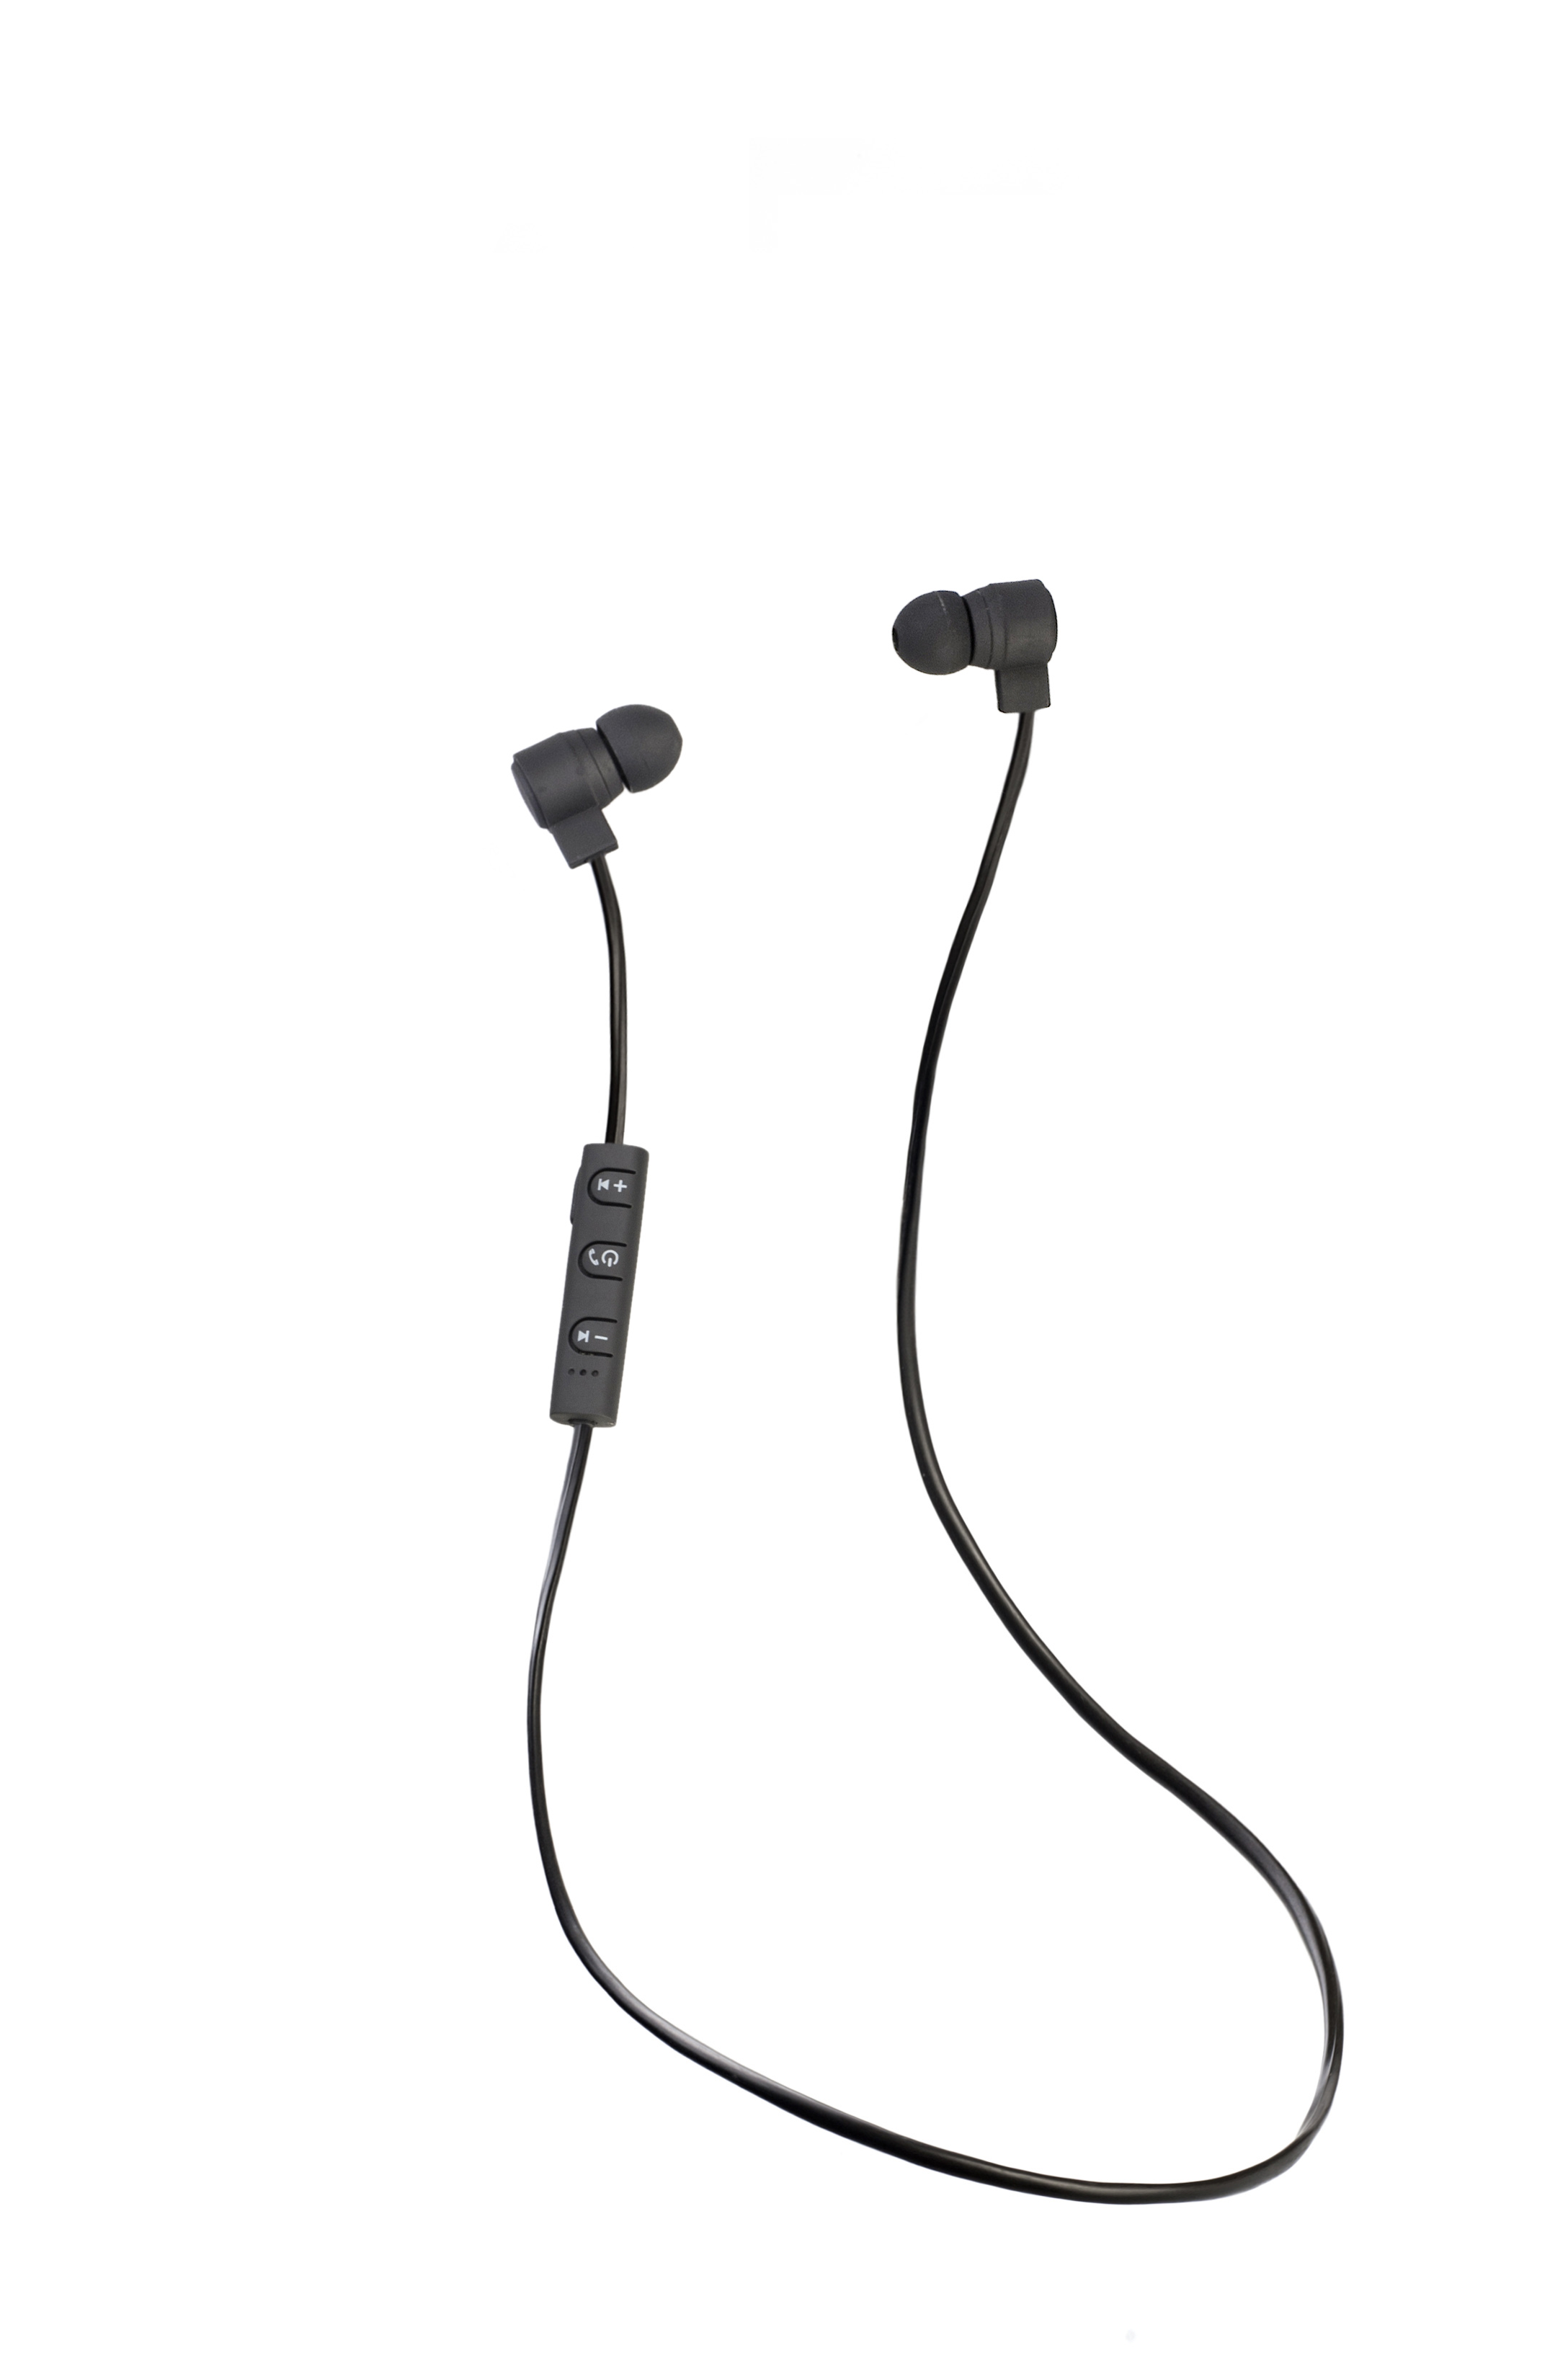 TIE AUDIO Bluetooth Earphones Daily